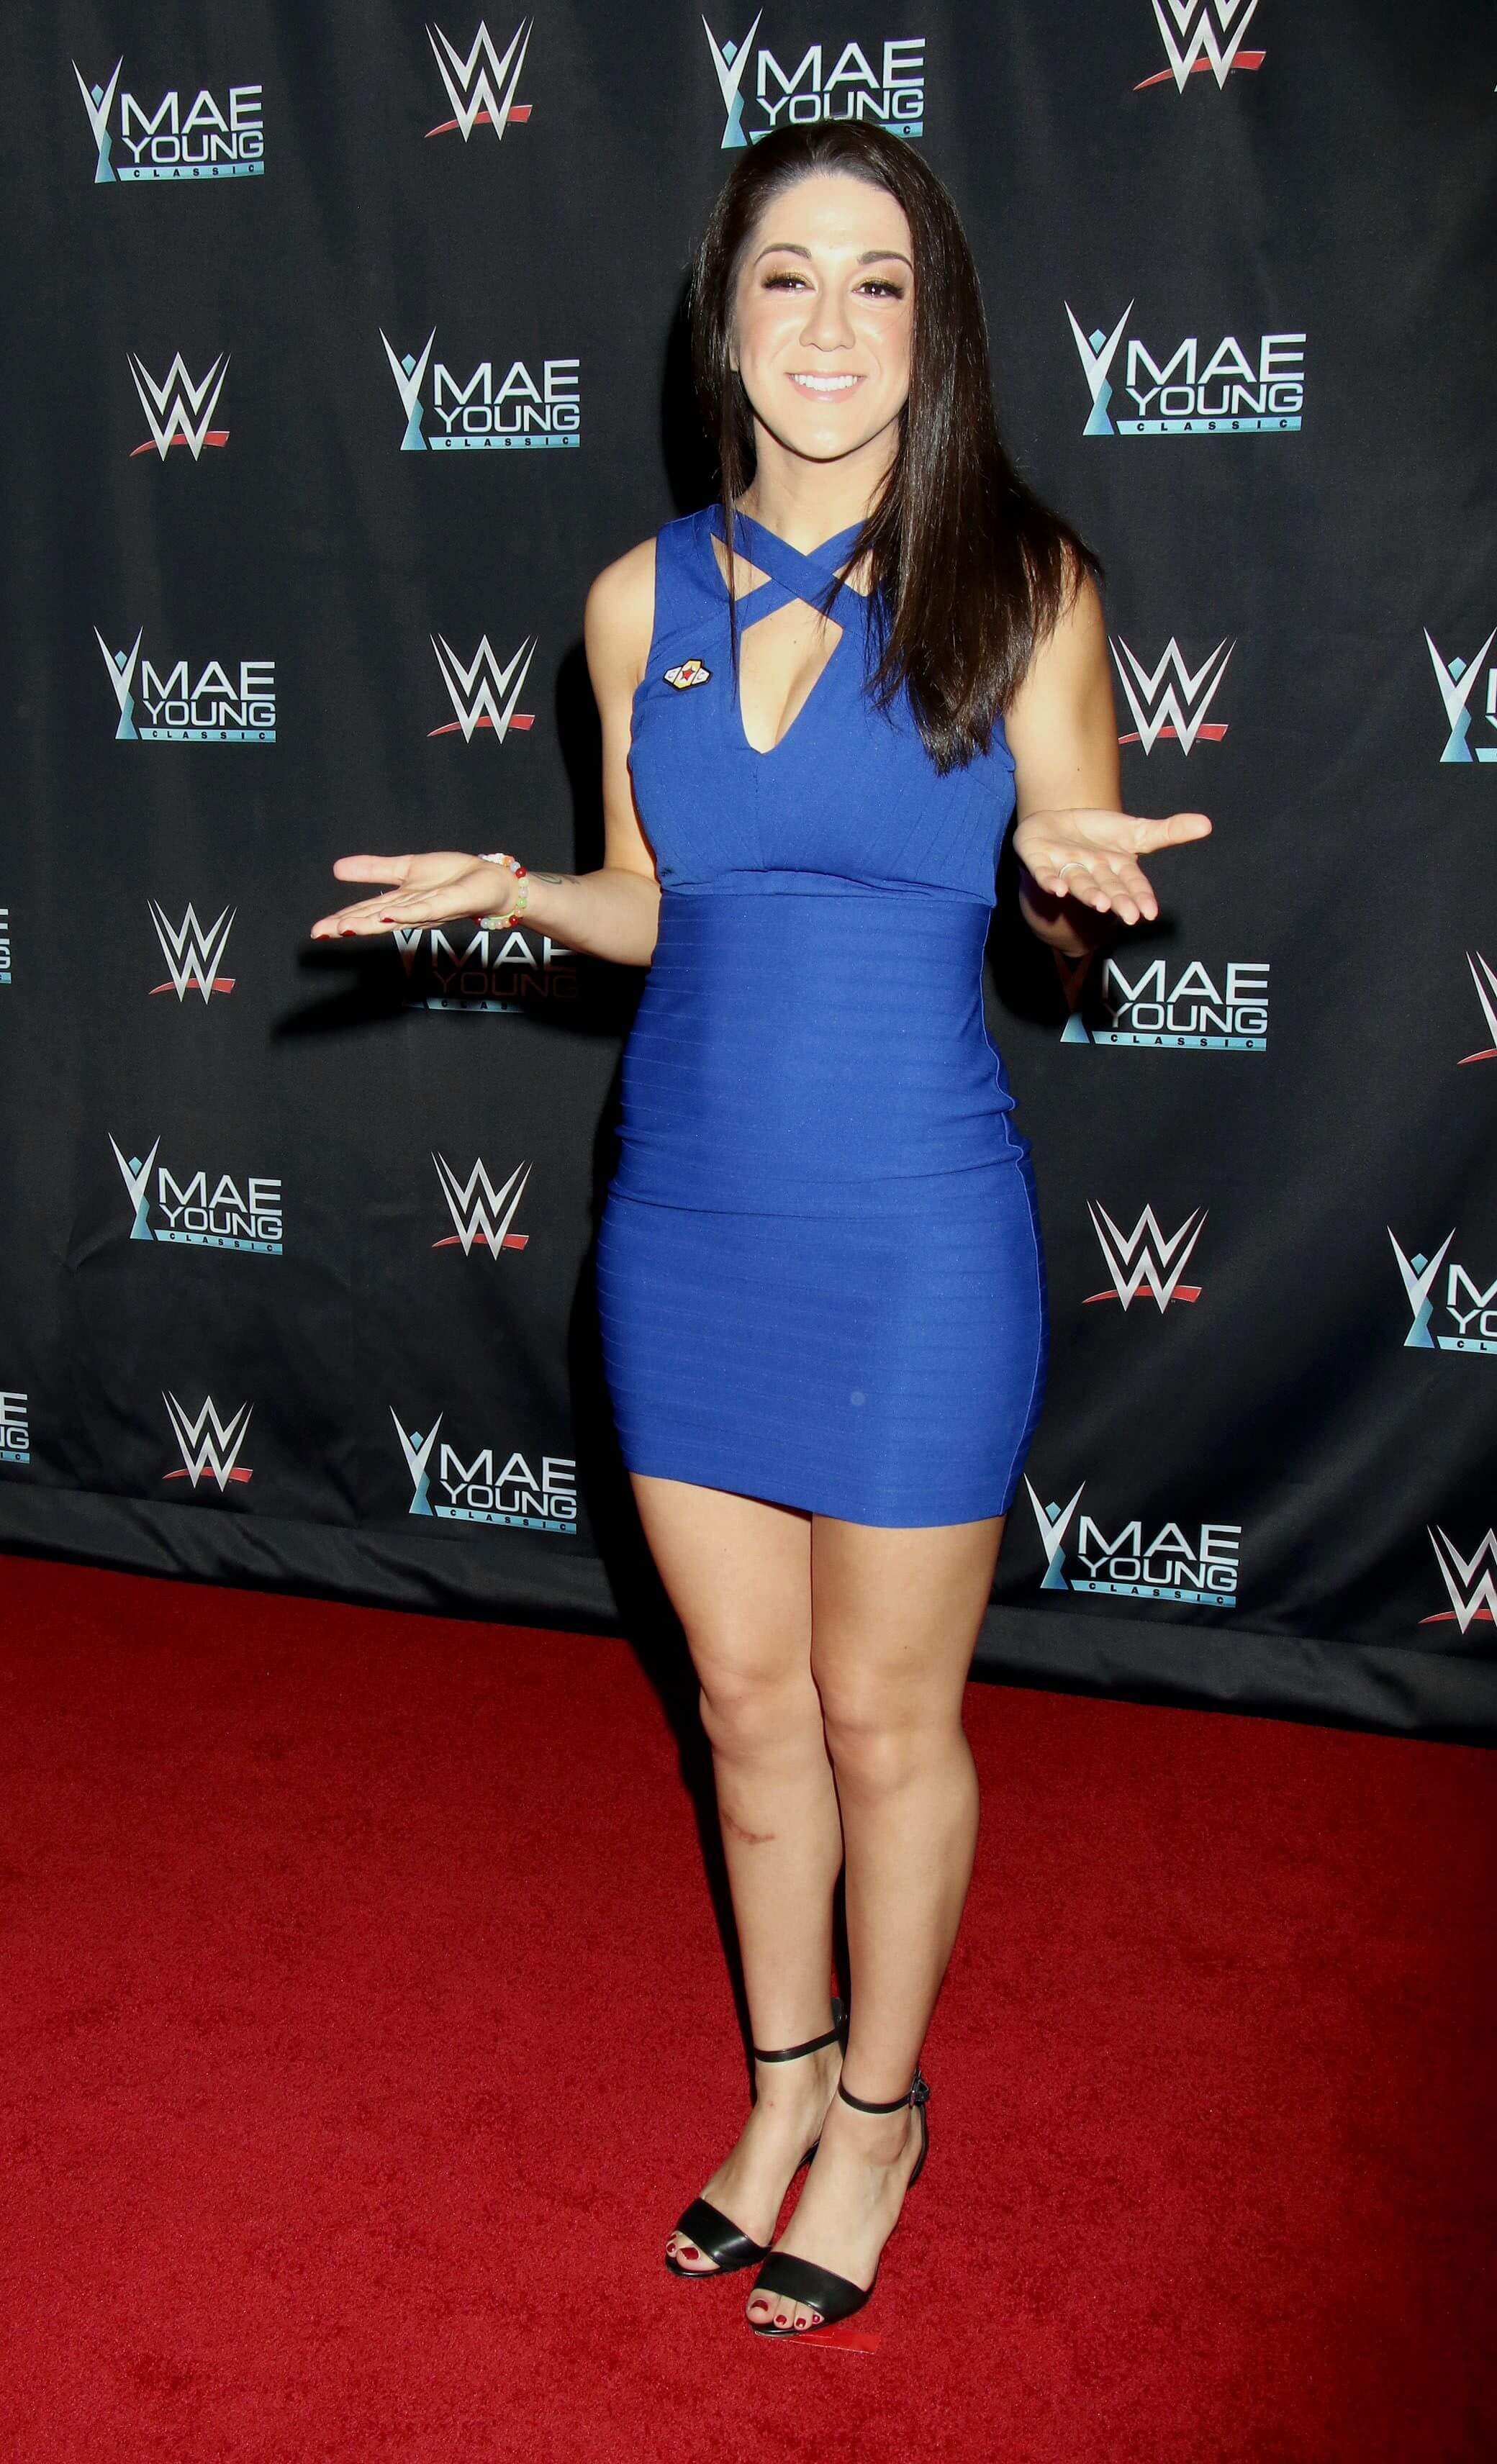 Bayley hot pic